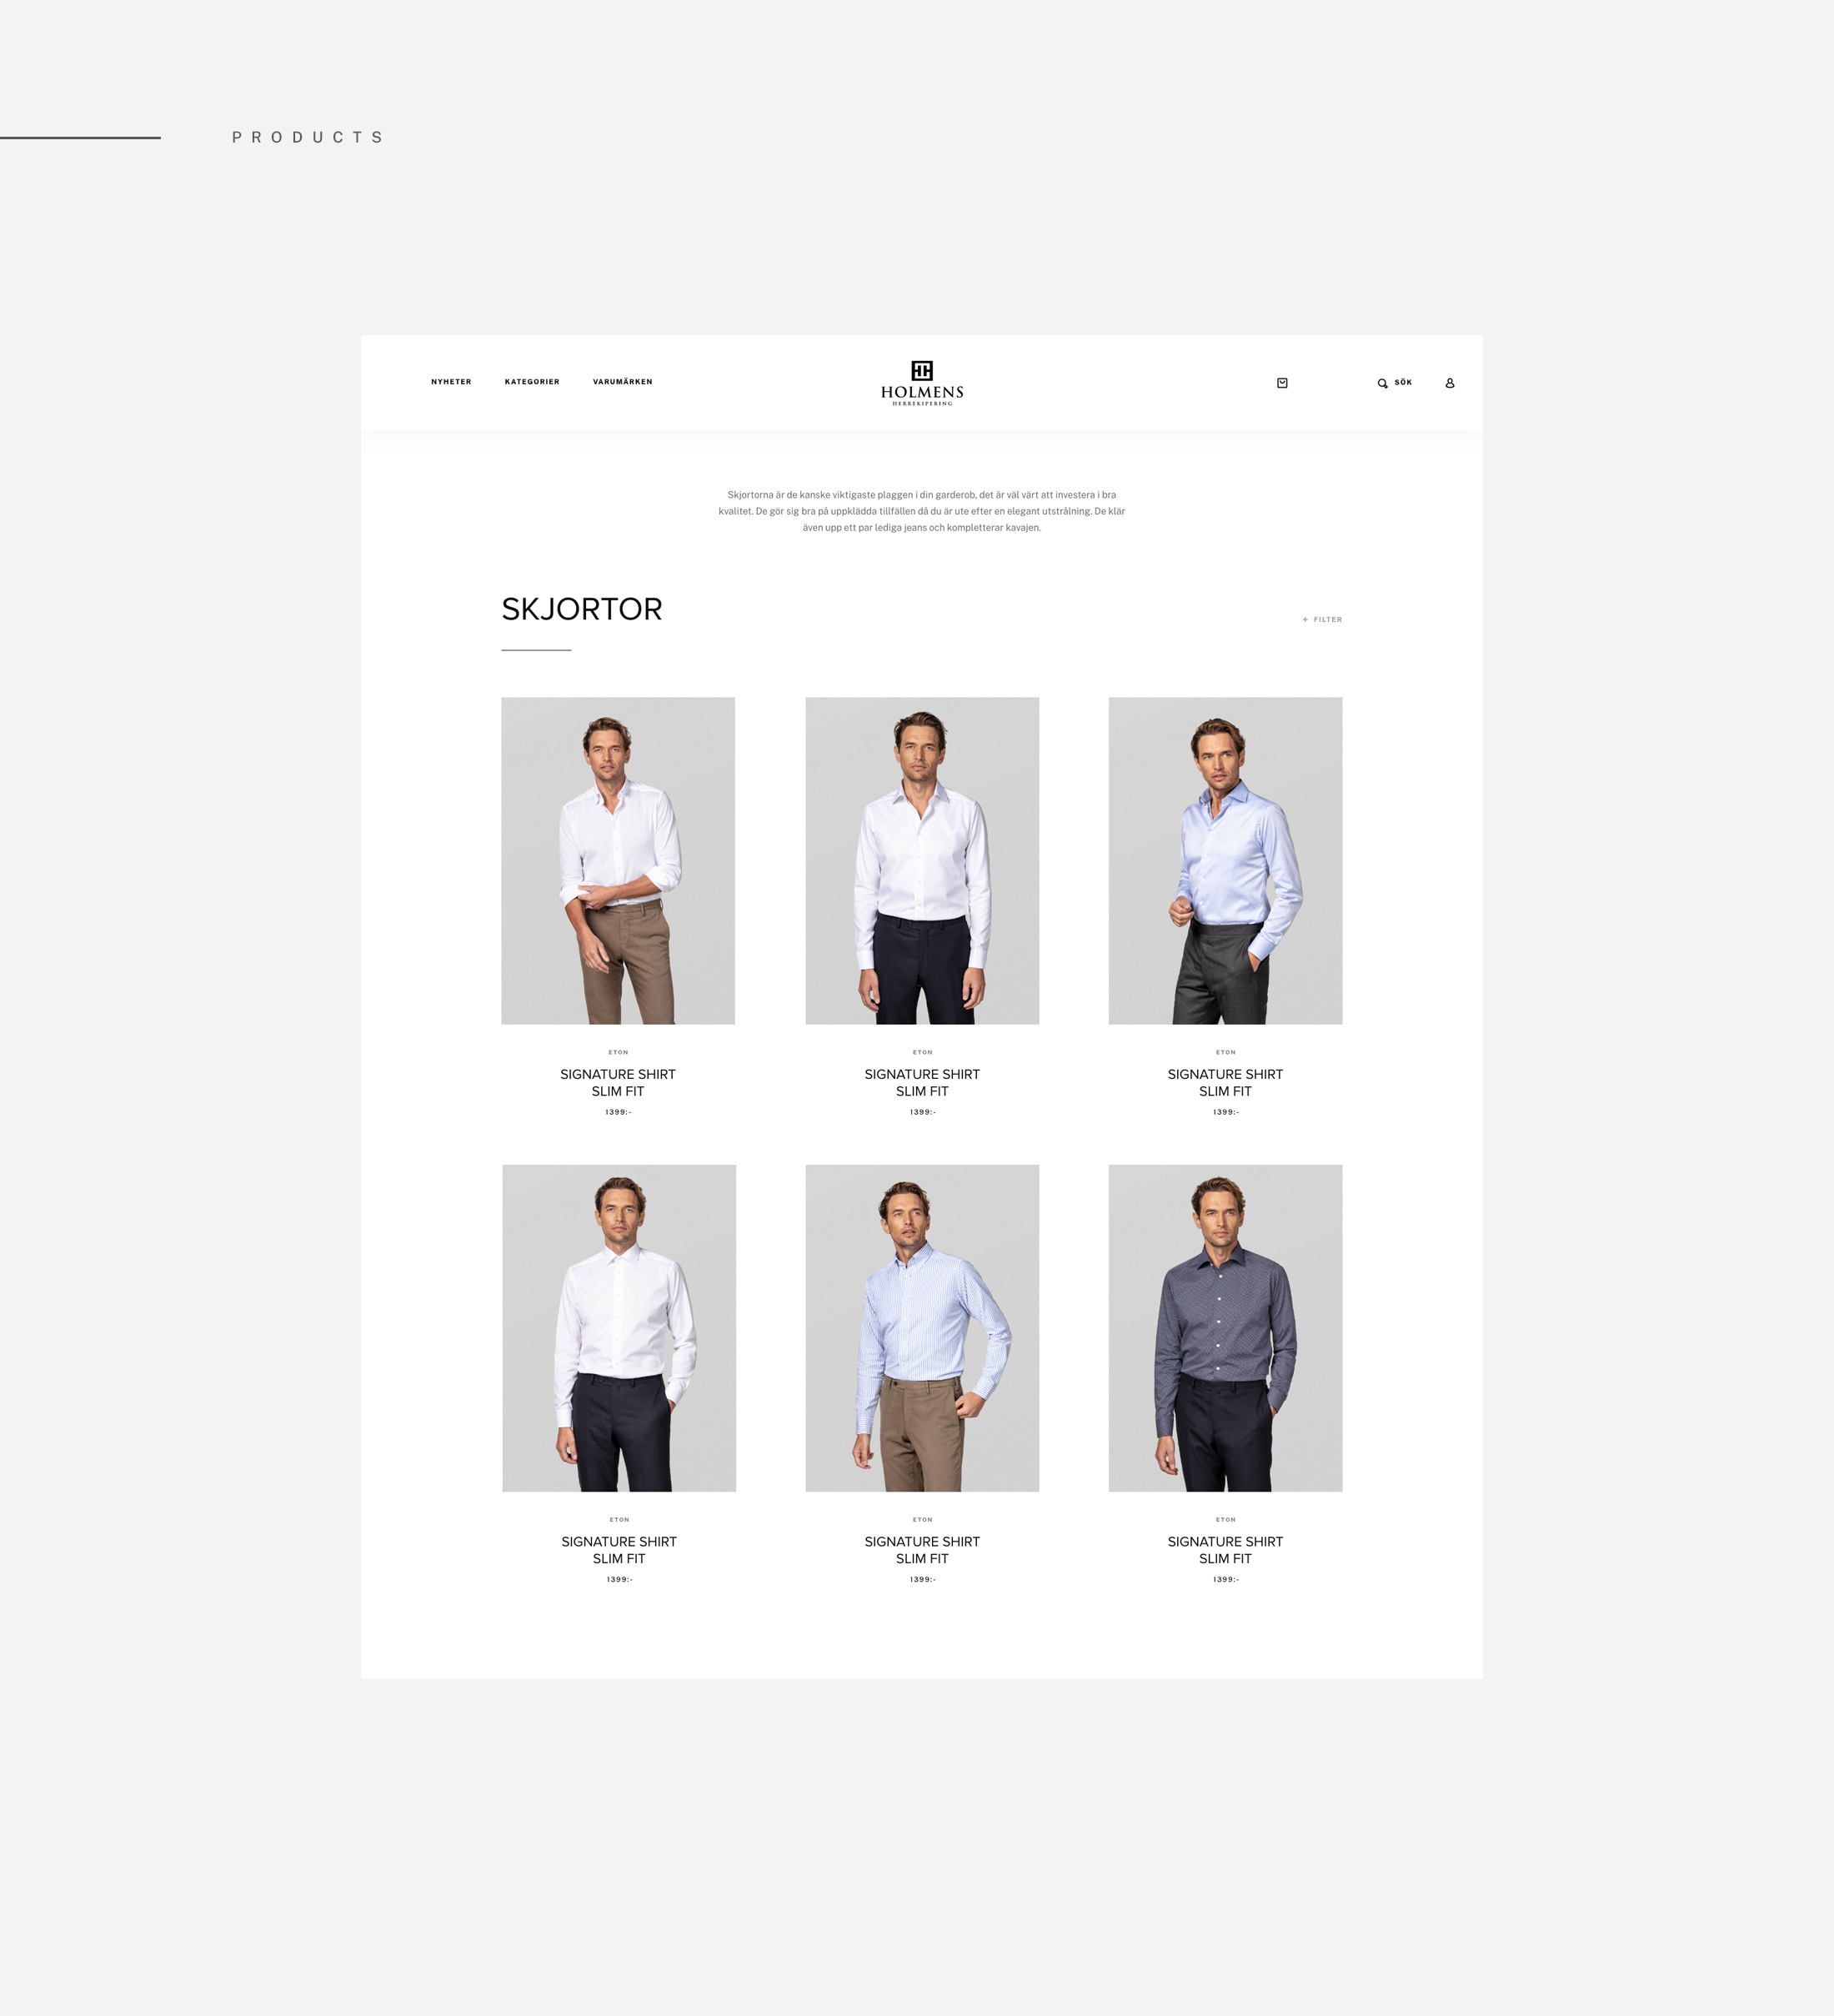 UI Design E-commerce Product Page